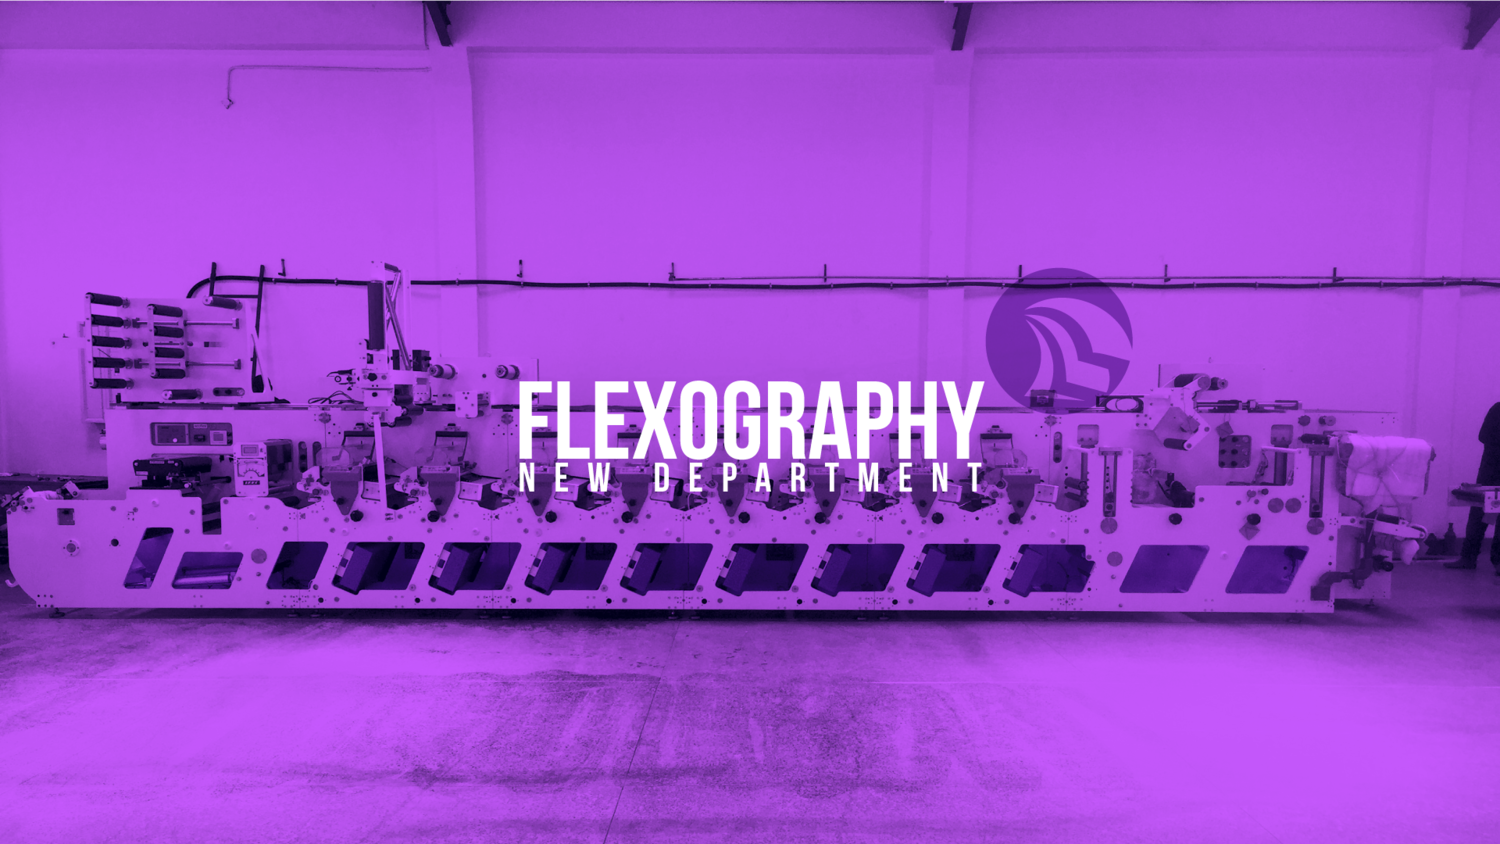 Flexo - Flexography is the major process used to print packaging materials for industries such as the consumer industry, pharma industry, cosmetic industry and lubricant industry.It is used to print corrugated containers, folding cartons, multi-wall sacks, paper sacks, plastic bags, milk and beverage cartons, disposable cups and containers, labels, adhesive tapes, envelopes, newspapers, and wrappers (candy and food).